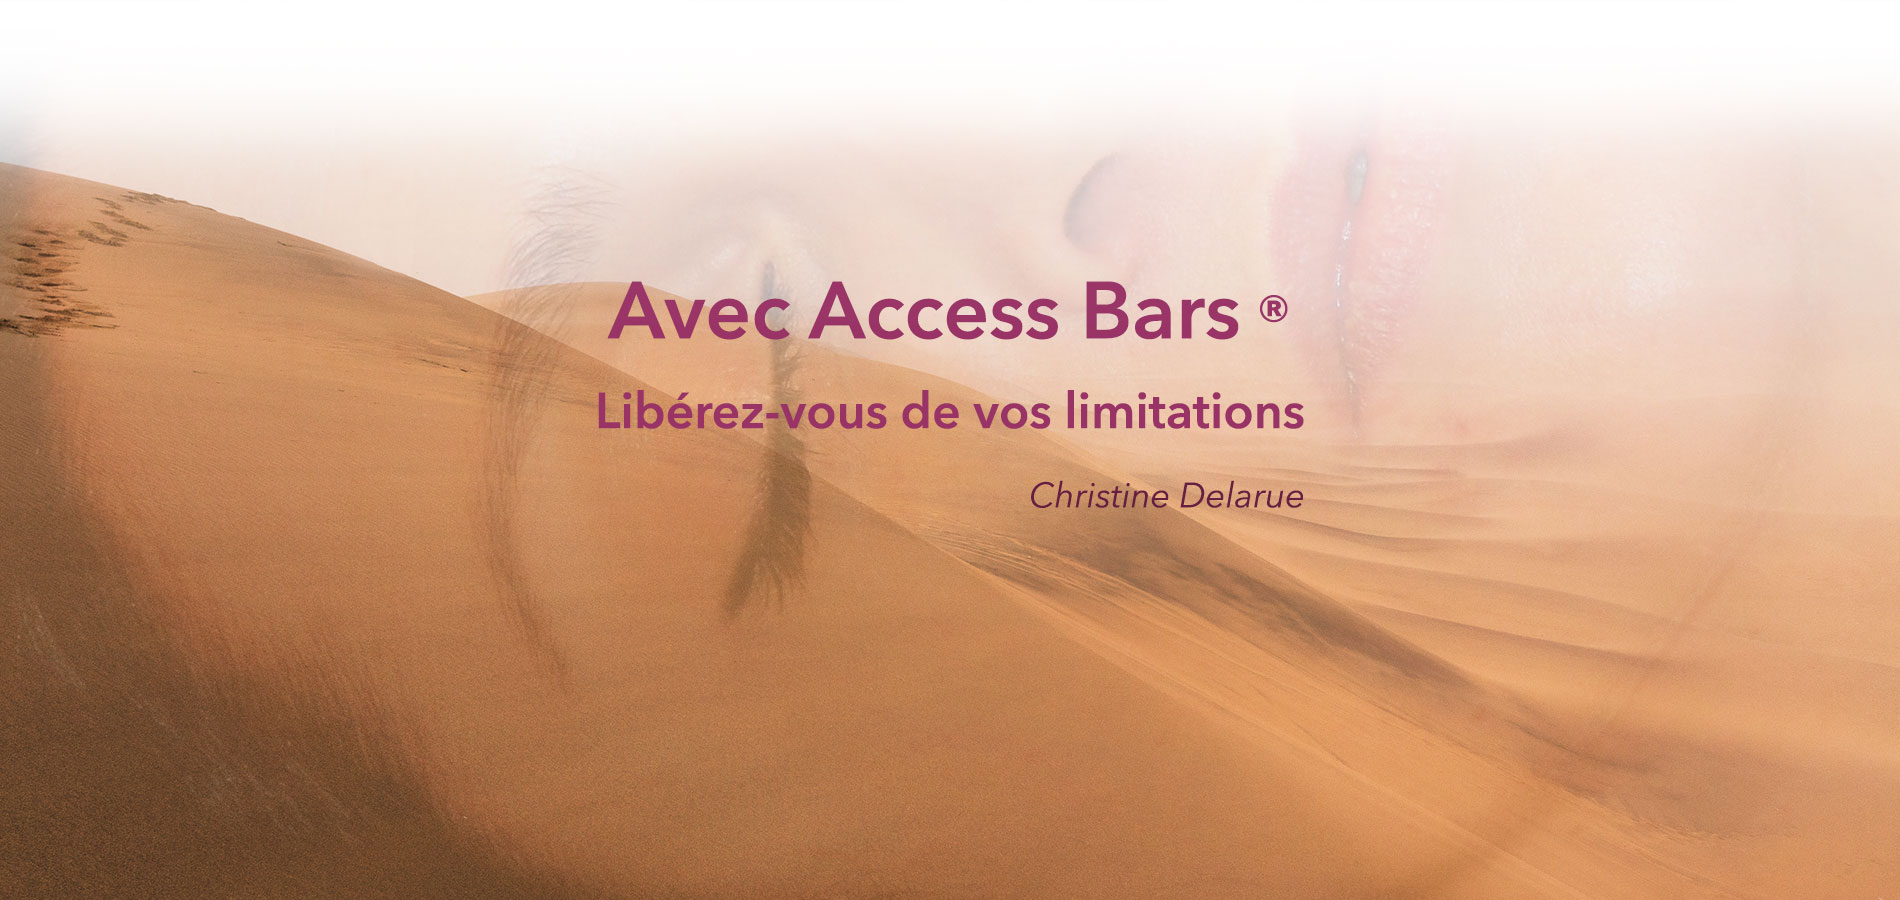 formation access bars lorient christine delarue